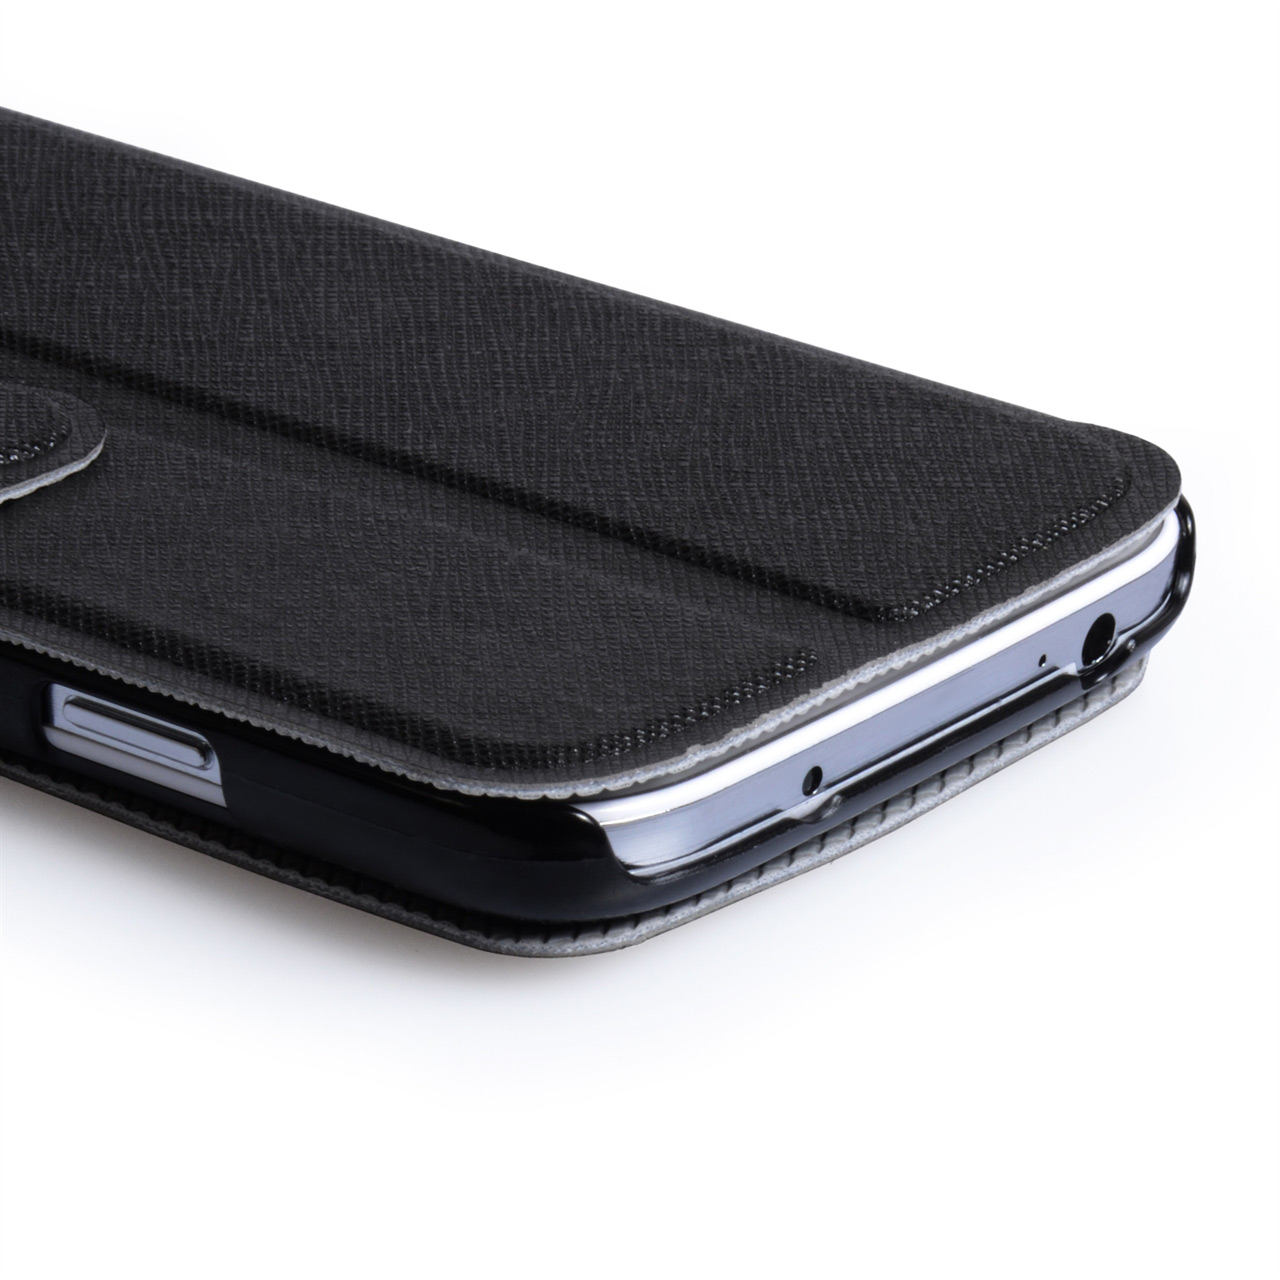 YouSave Samsung Galaxy S4 Leather Effect Wallet Stand Case - Black